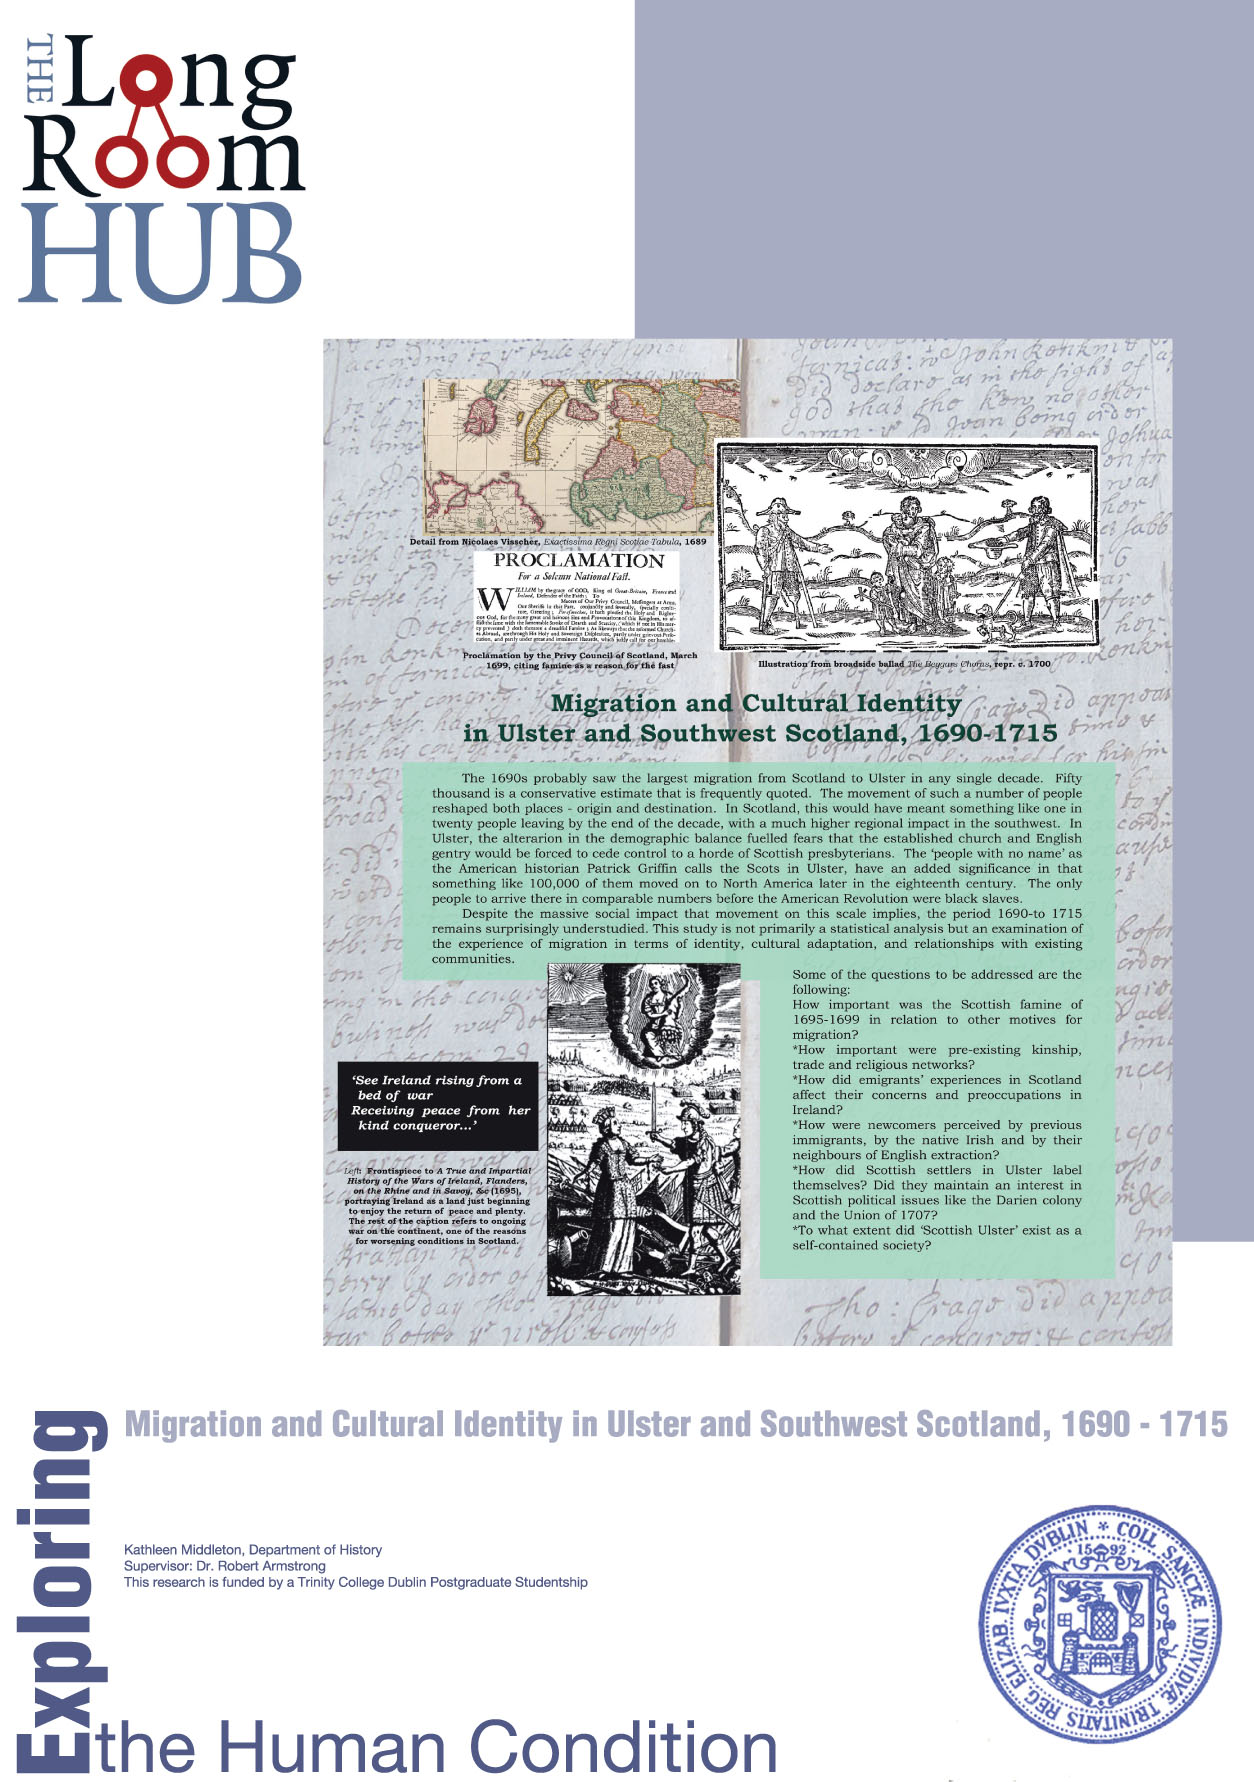 Migration and Cultural Identity in Ulster and Southwest Scotland